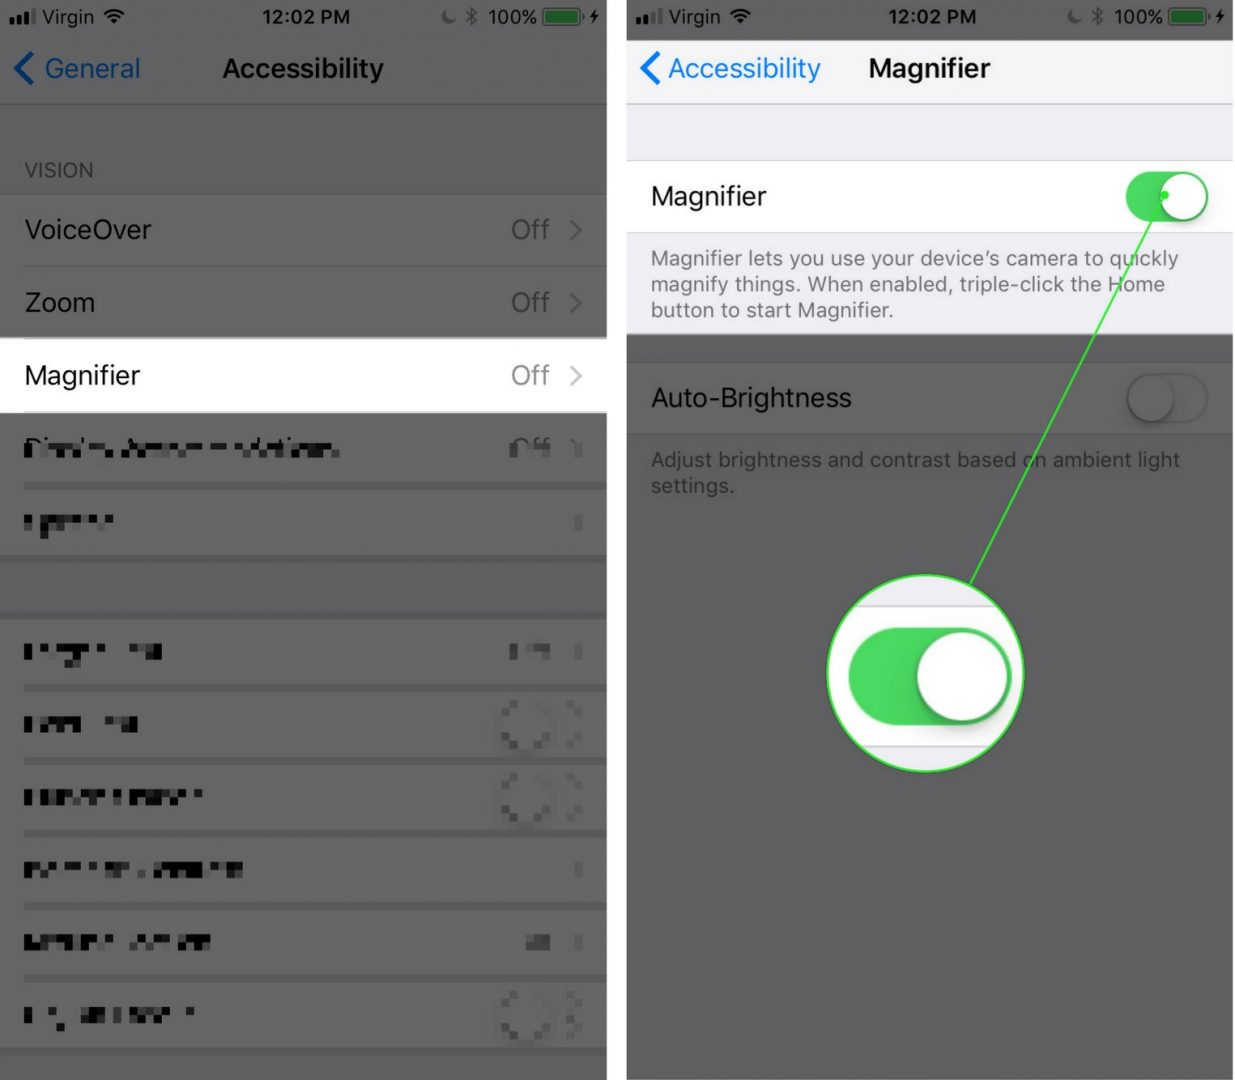 turn on magnifier in settings app